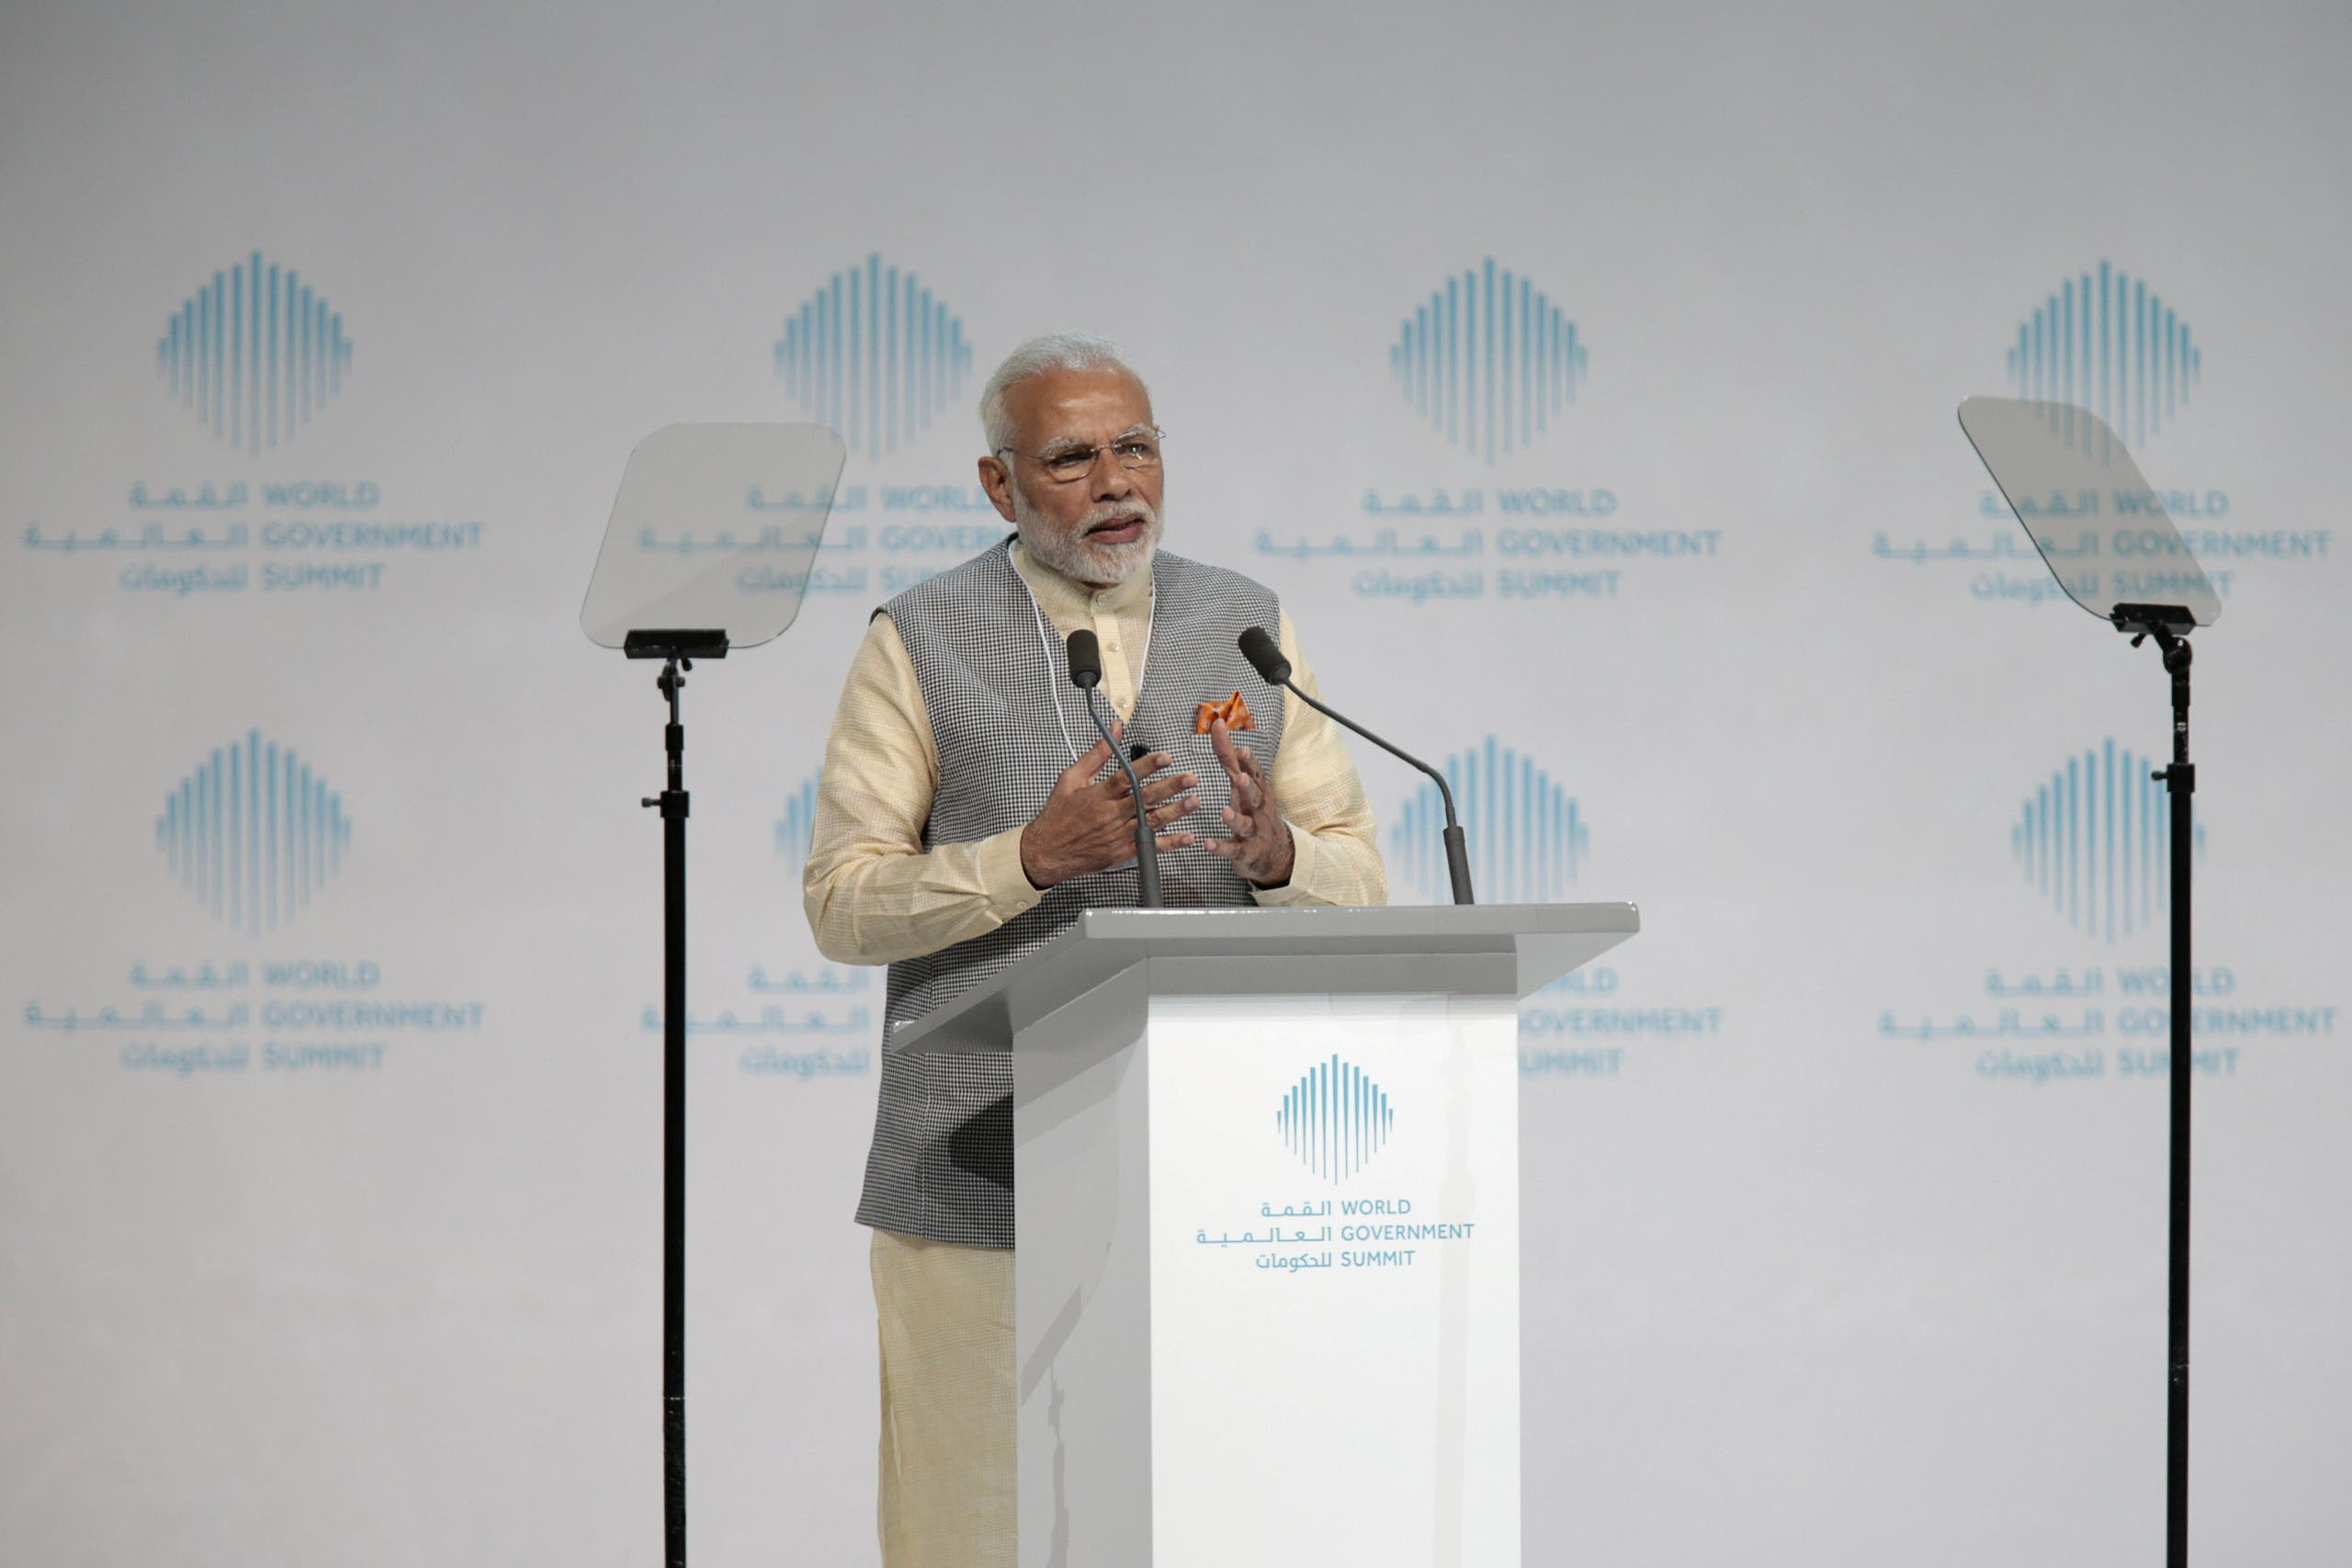 Prime Minister Narendra Modi speaks during the World Government Summit in Dubai on February 11, 2018. (Reuters)